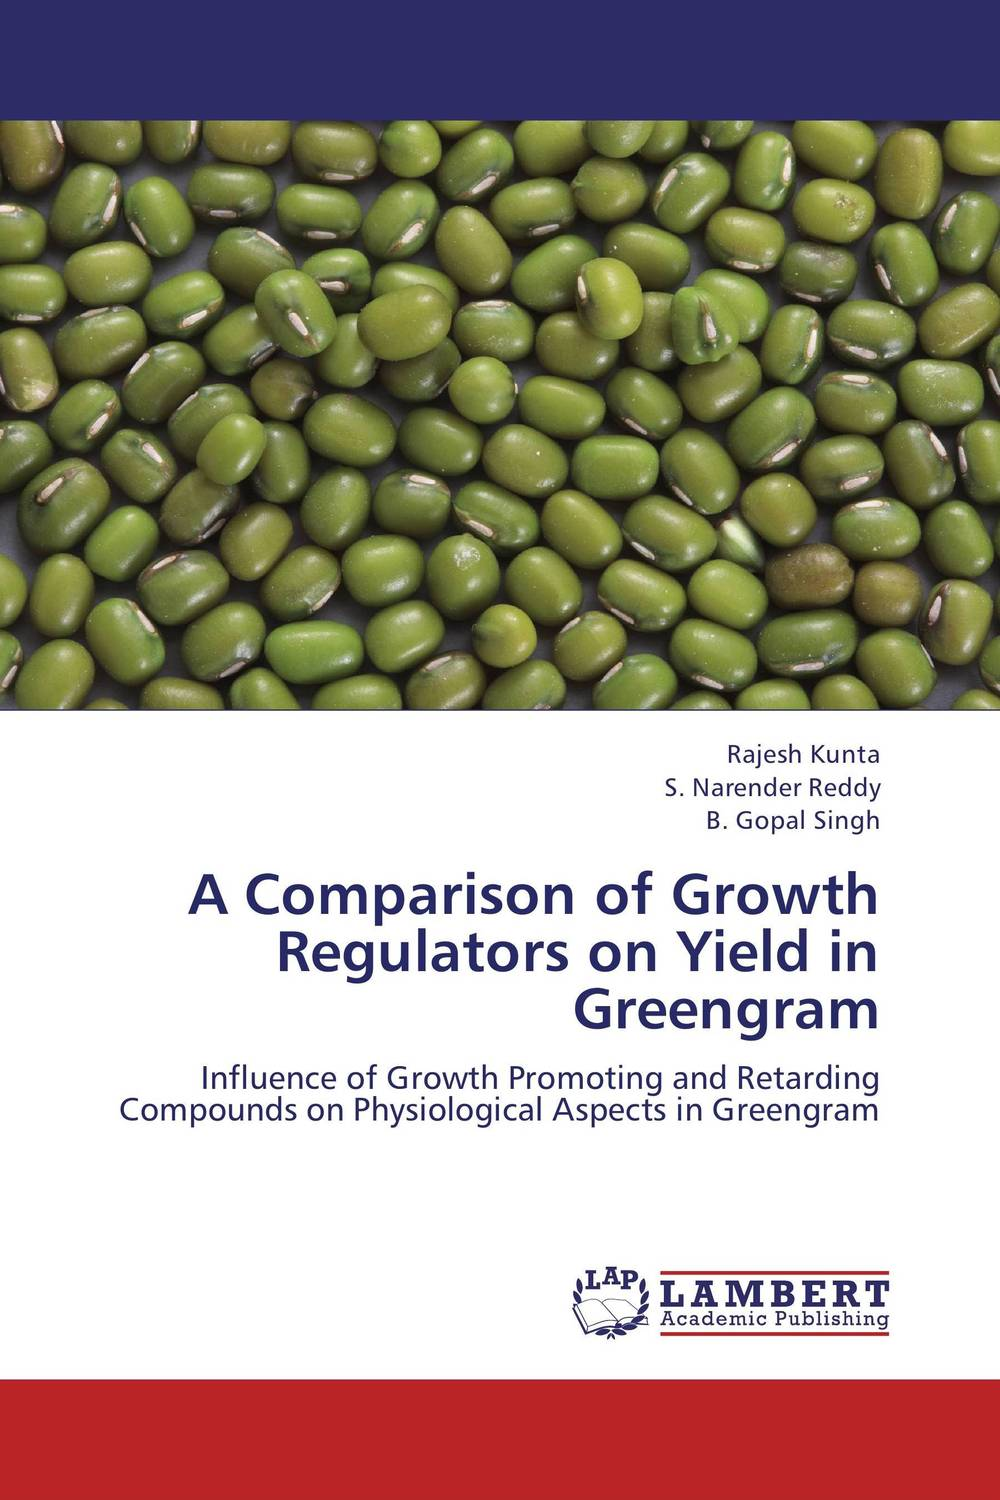 A Comparison of Growth Regulators on Yield in Greengram